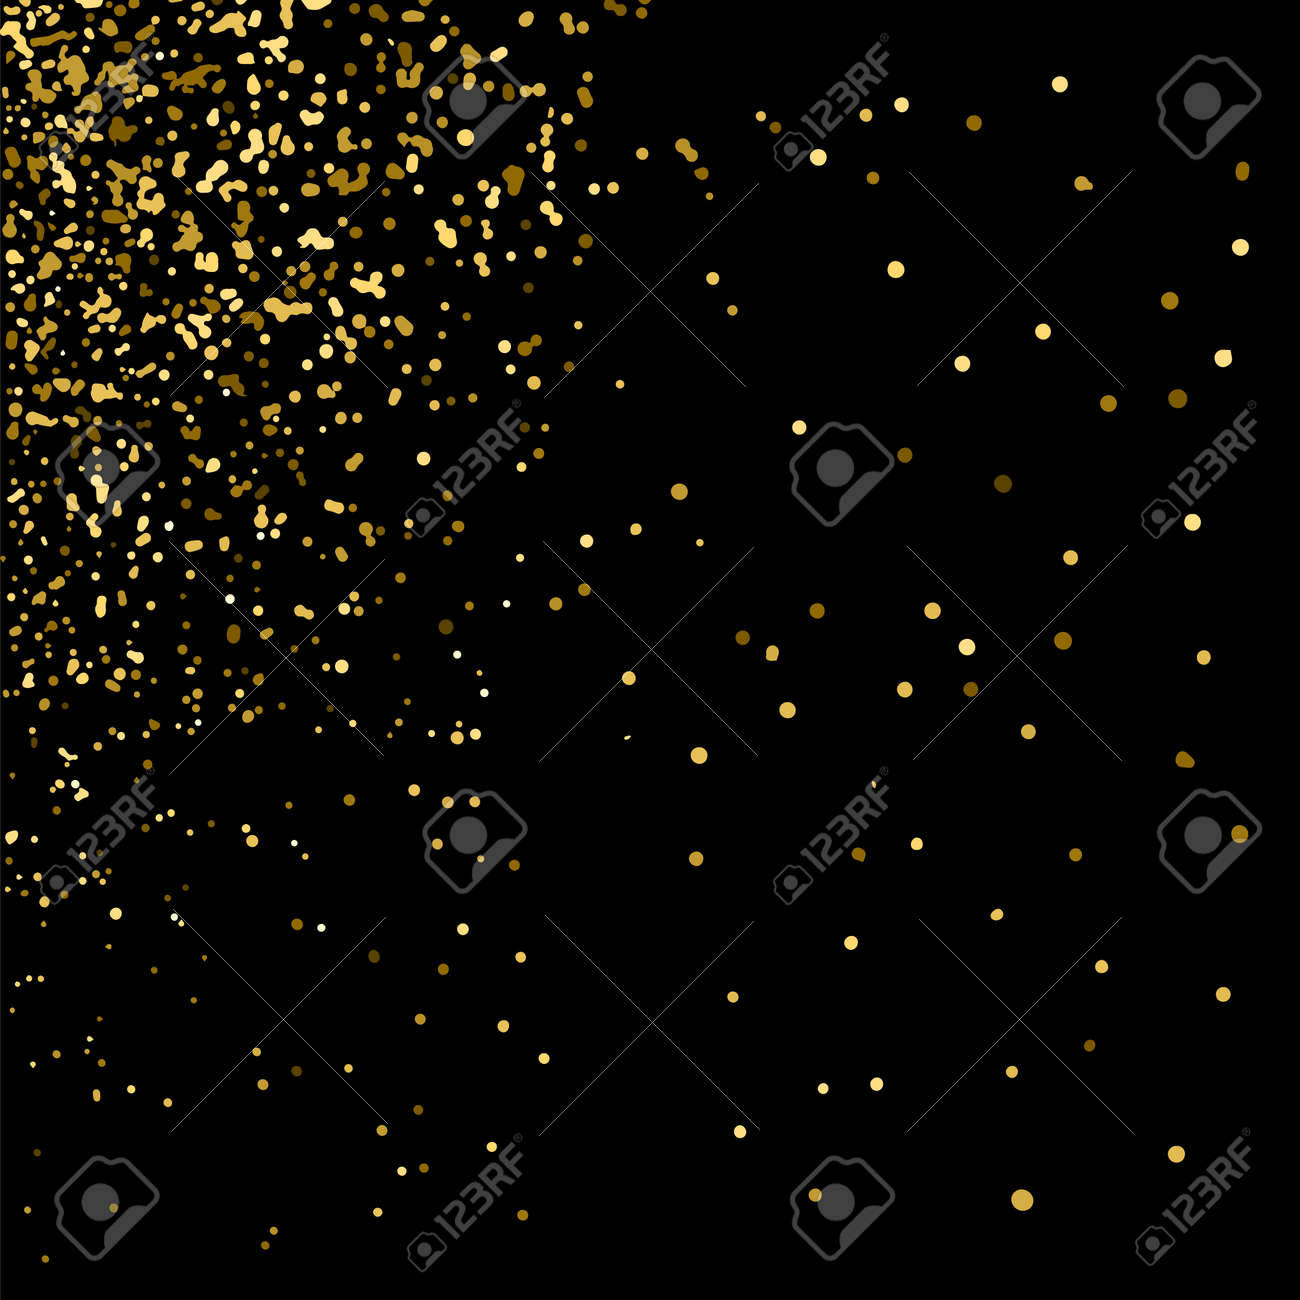 Gold glitter texture on black background. Golden explosion of confetti. Golden grainy abstract texture on black background. Holiday background. Design element. Vector illustration,eps 10. - 51580133